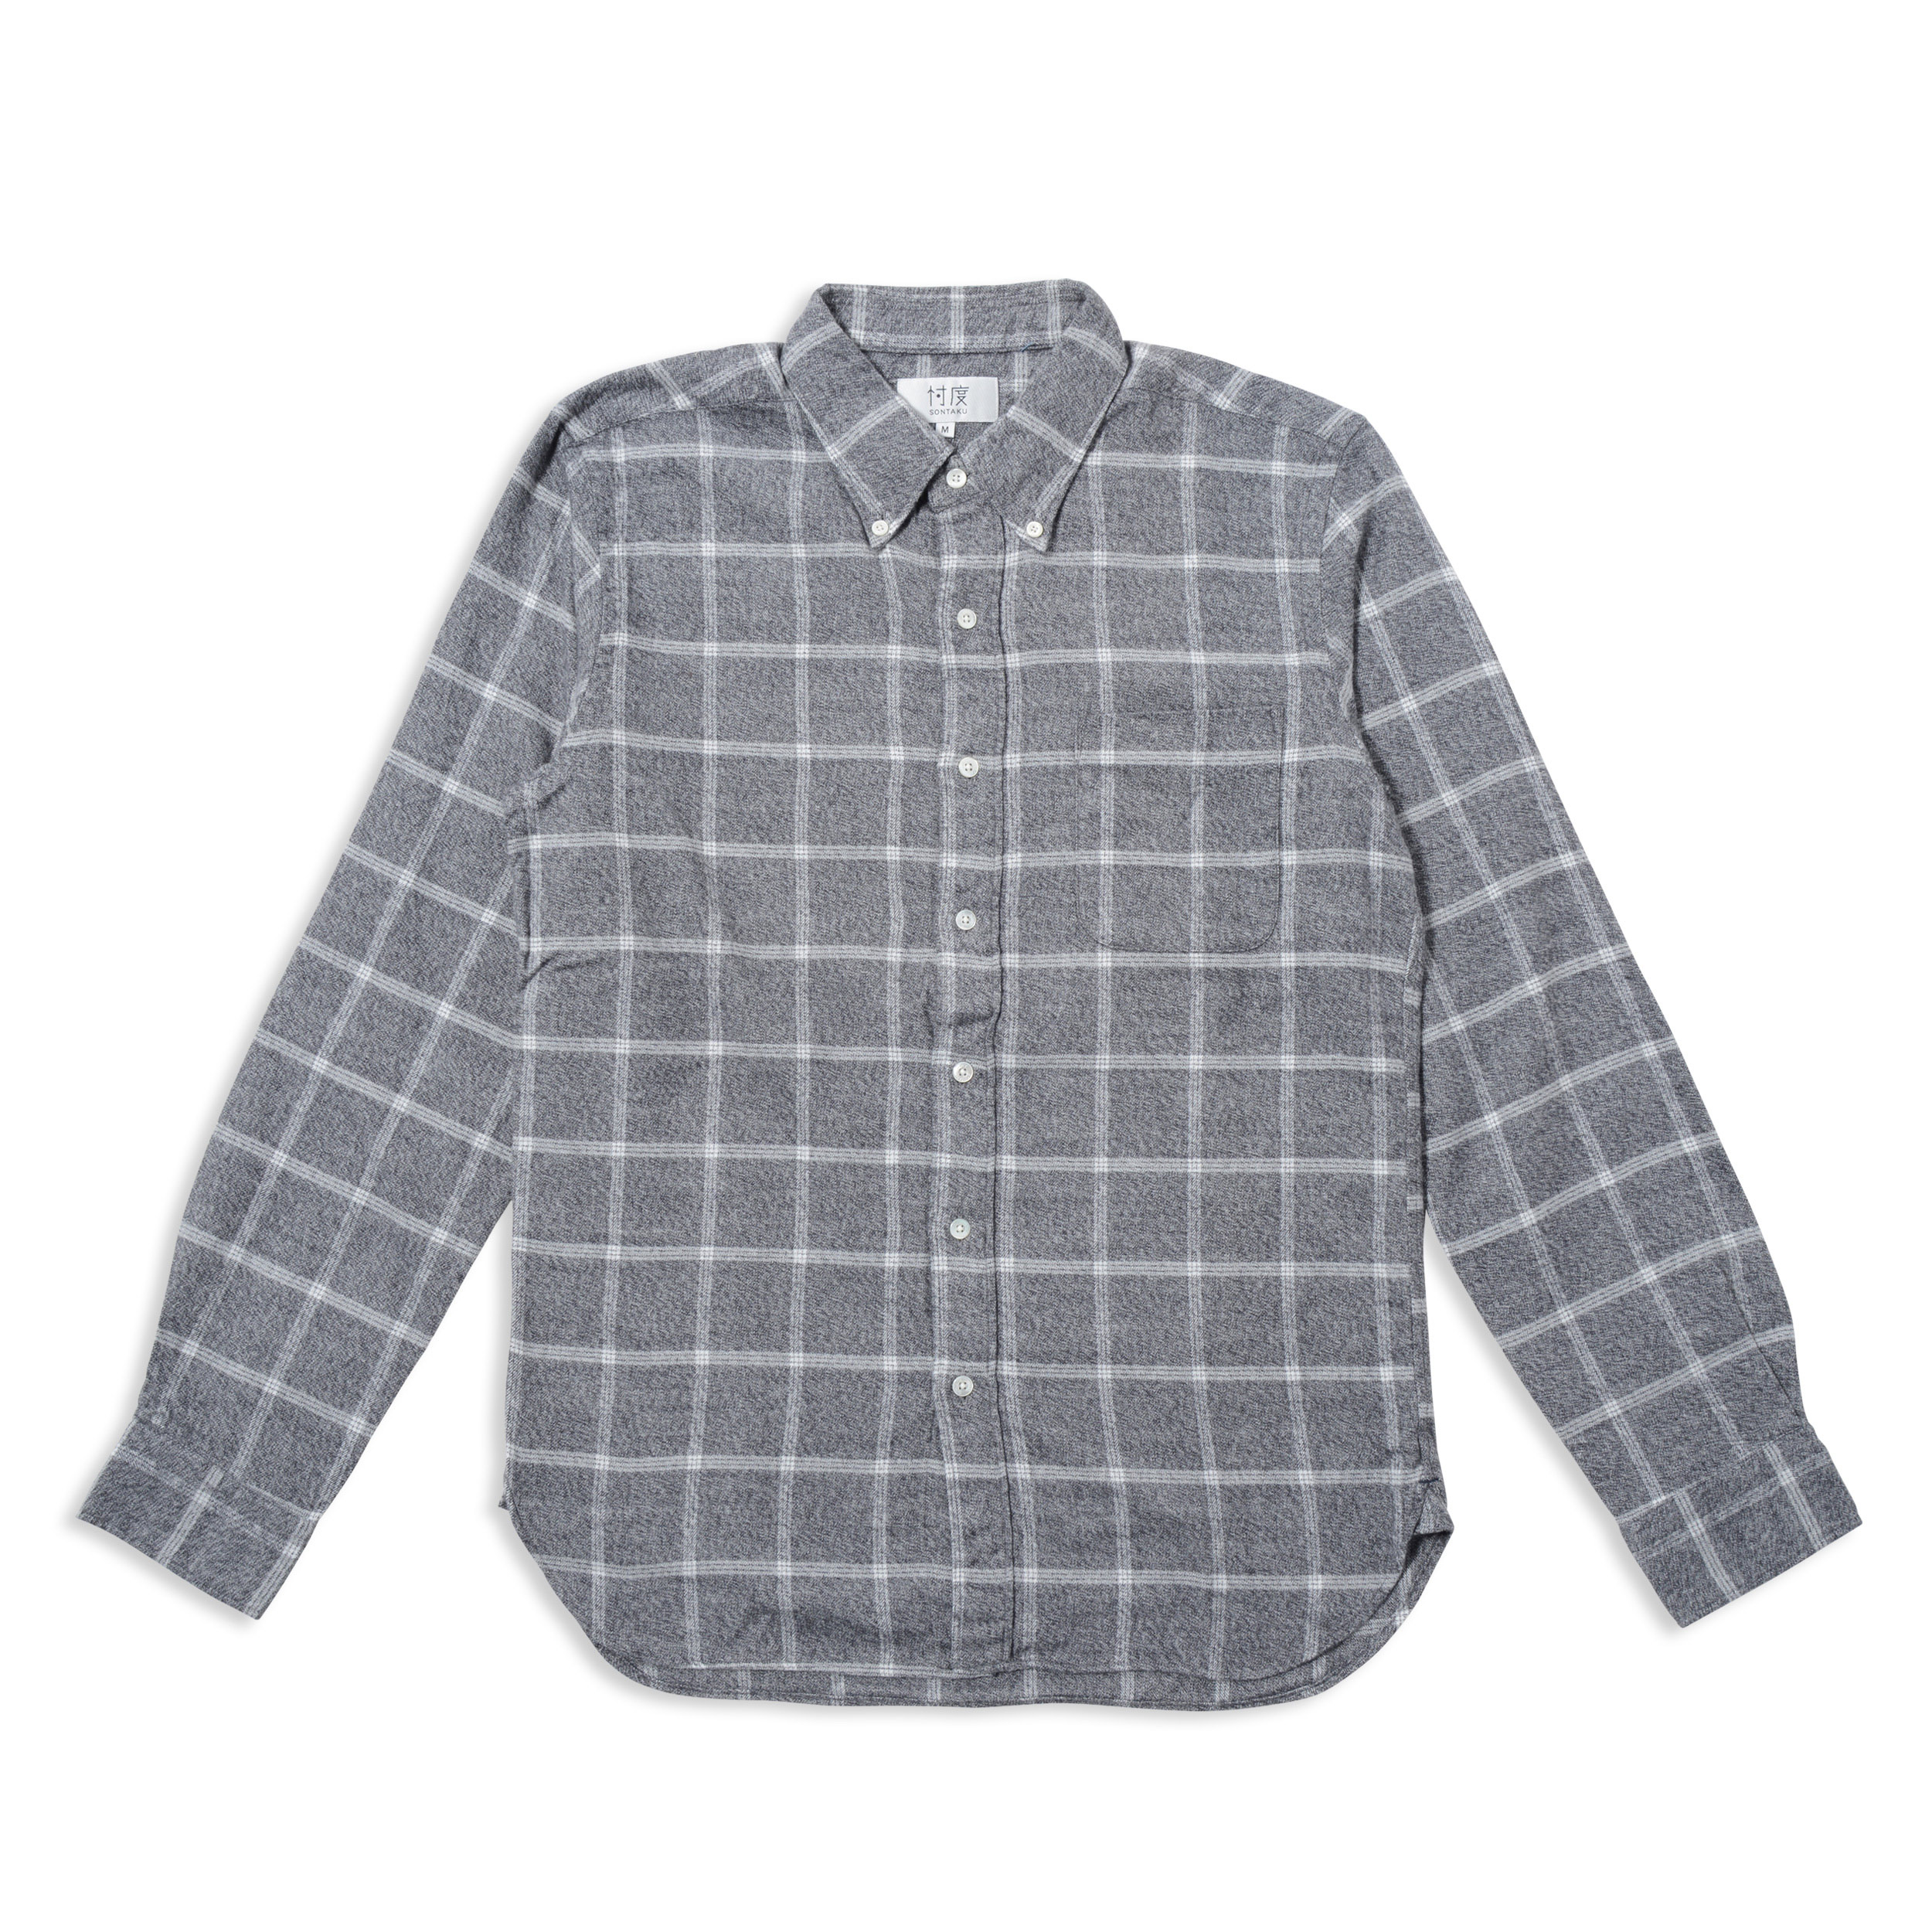 【35%OFF商品】SOFT TOUCH WINDOWPANE BD SHIRT(1703FN)